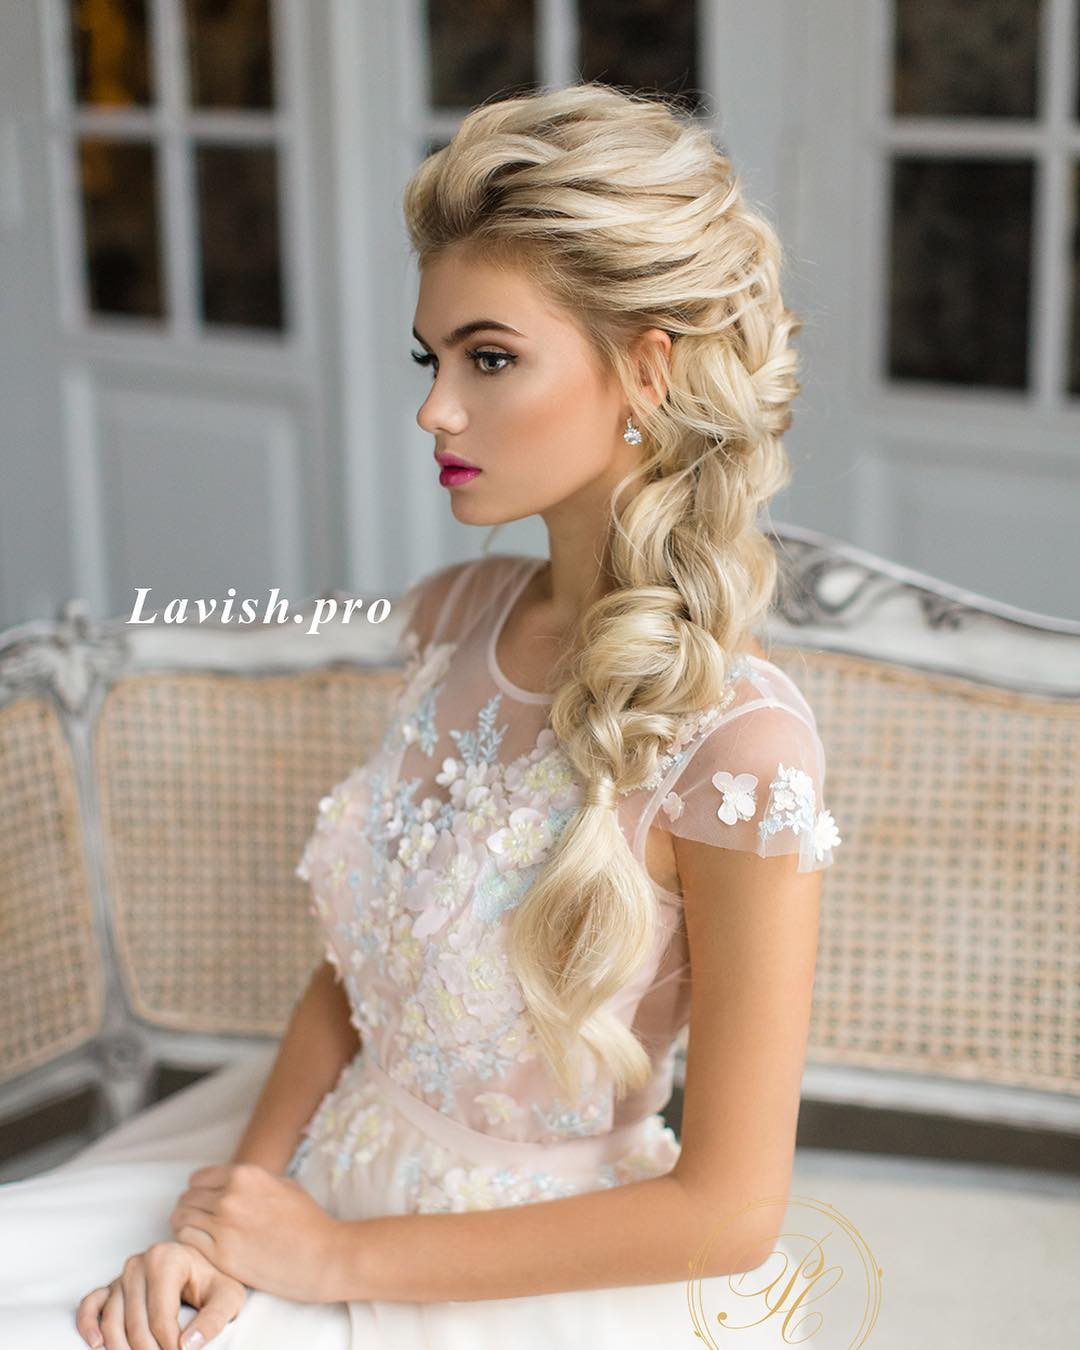 Beautiful Wedding Hairstyles for Long Hair - Bride Hairstyle Designs